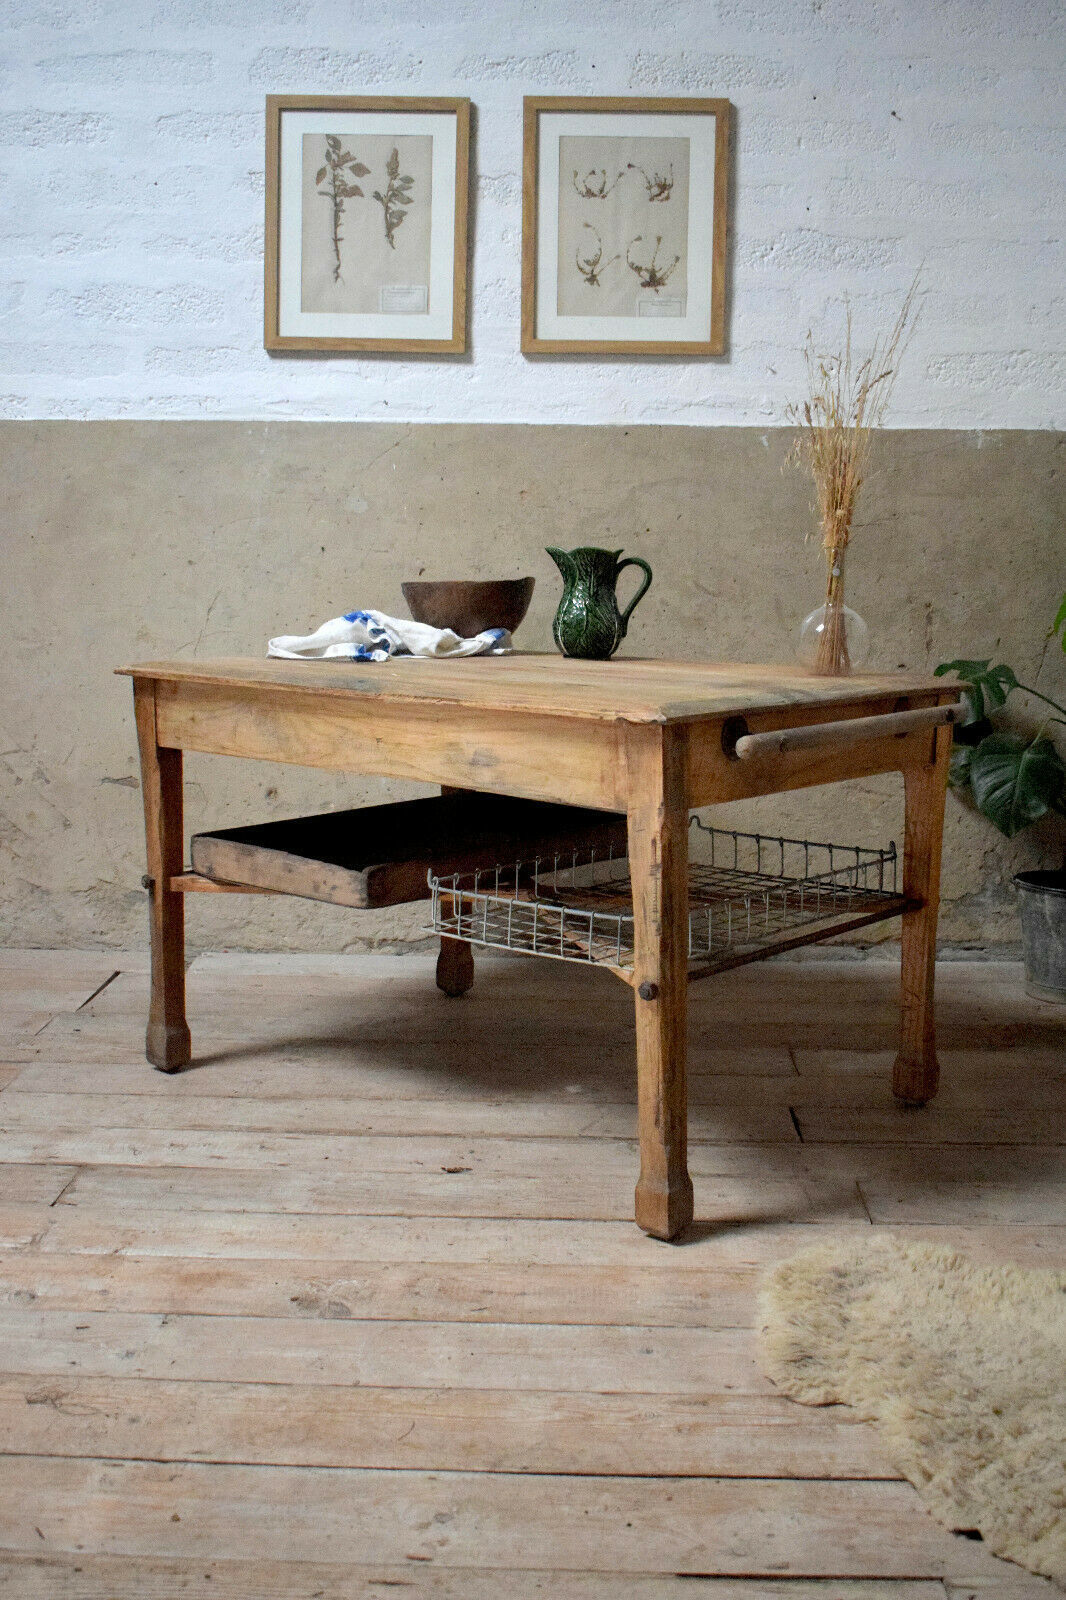 Antique Vintage Rustic Bakers Bread Prep Table With Trays Kitchen Dining Table Vinterior